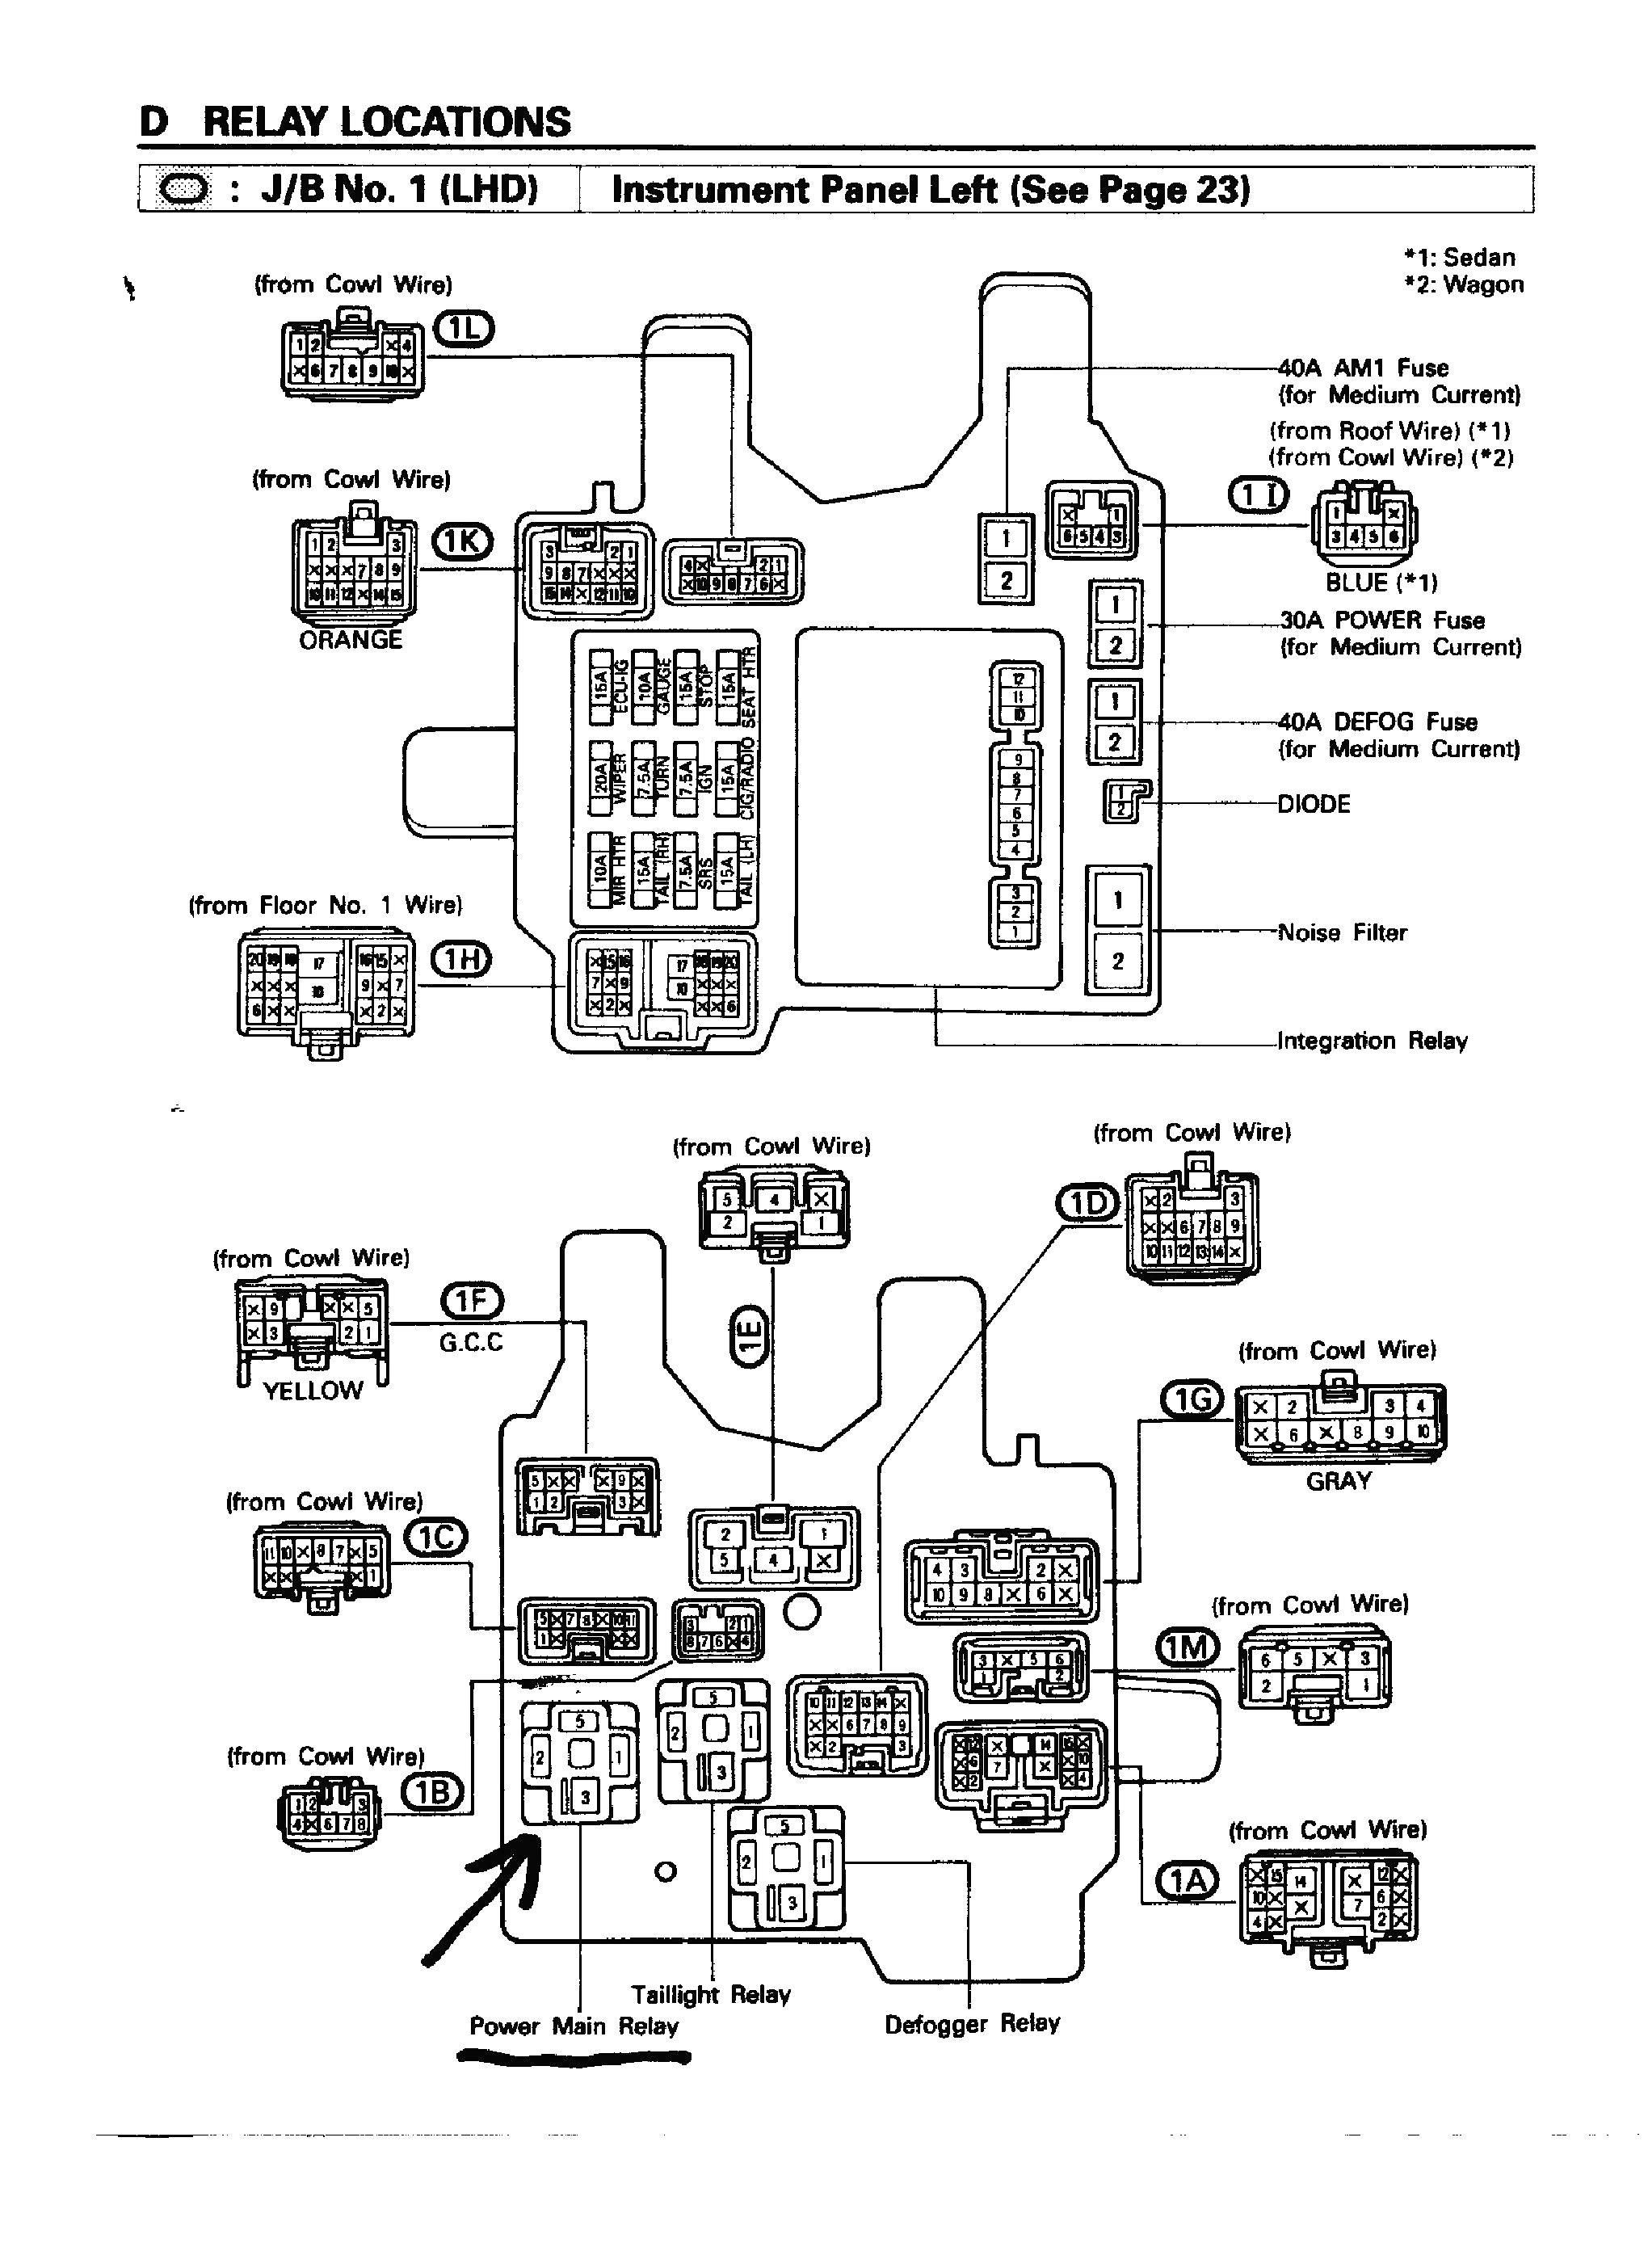 bad boy mower wiring diagram schematic diagramwiring diagram for 2006 bad boy buggy xt wiring diagram bad boy mower transformer bad boy